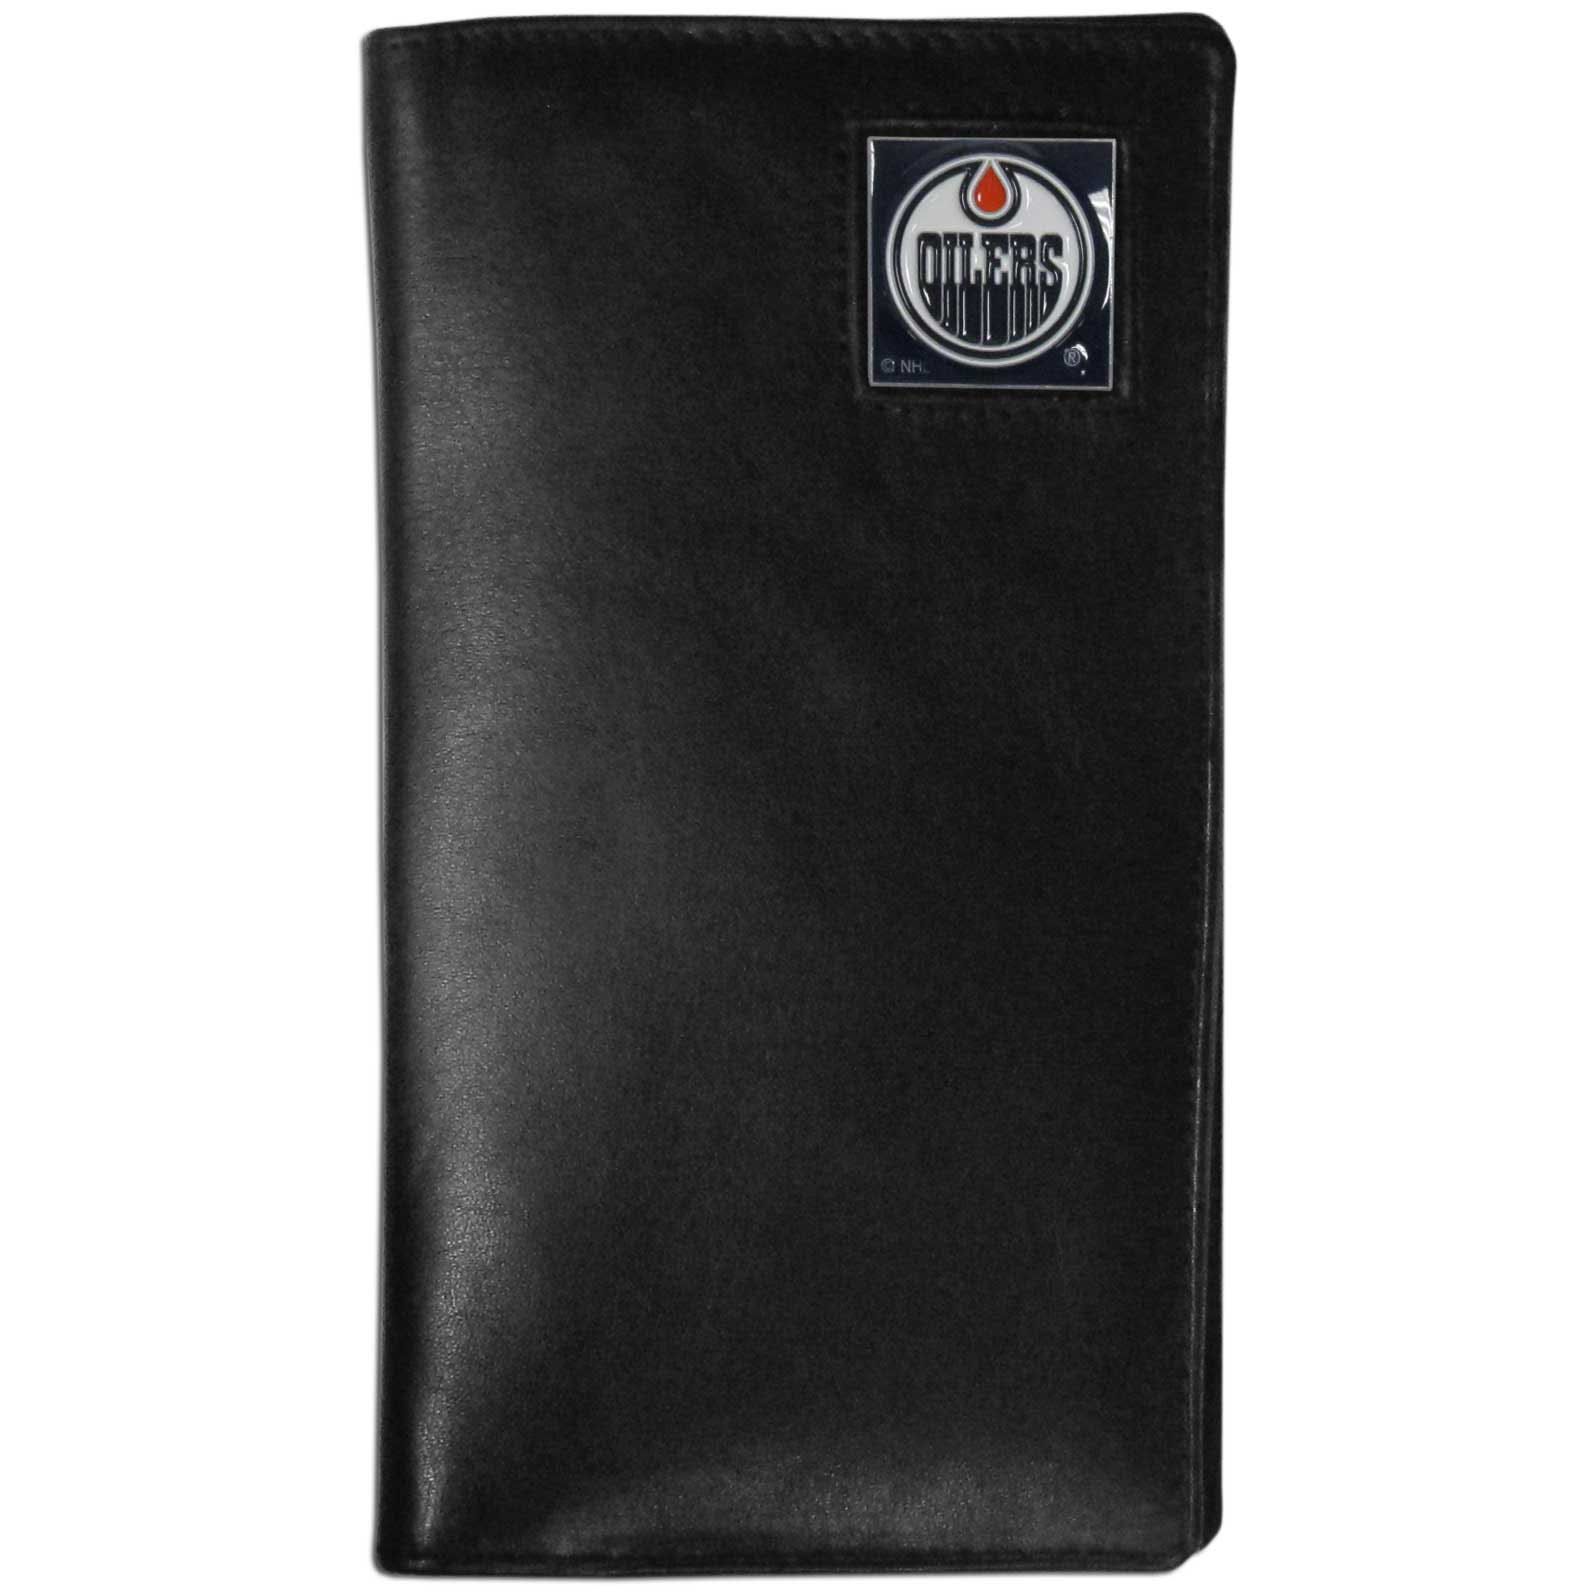 Edmonton Oilers Tall Leather Wallet - This officially licensed Edmonton Oilers tall leather wallet cover is made of high quality leather with a fully cast metal Edmonton Oilers emblem with enameled Edmonton Oilers color detail. The cover fits both side and top loaded checks and includes a large zippered pocket, windowed ID slot, numerous credit card slots and billfold pocket.